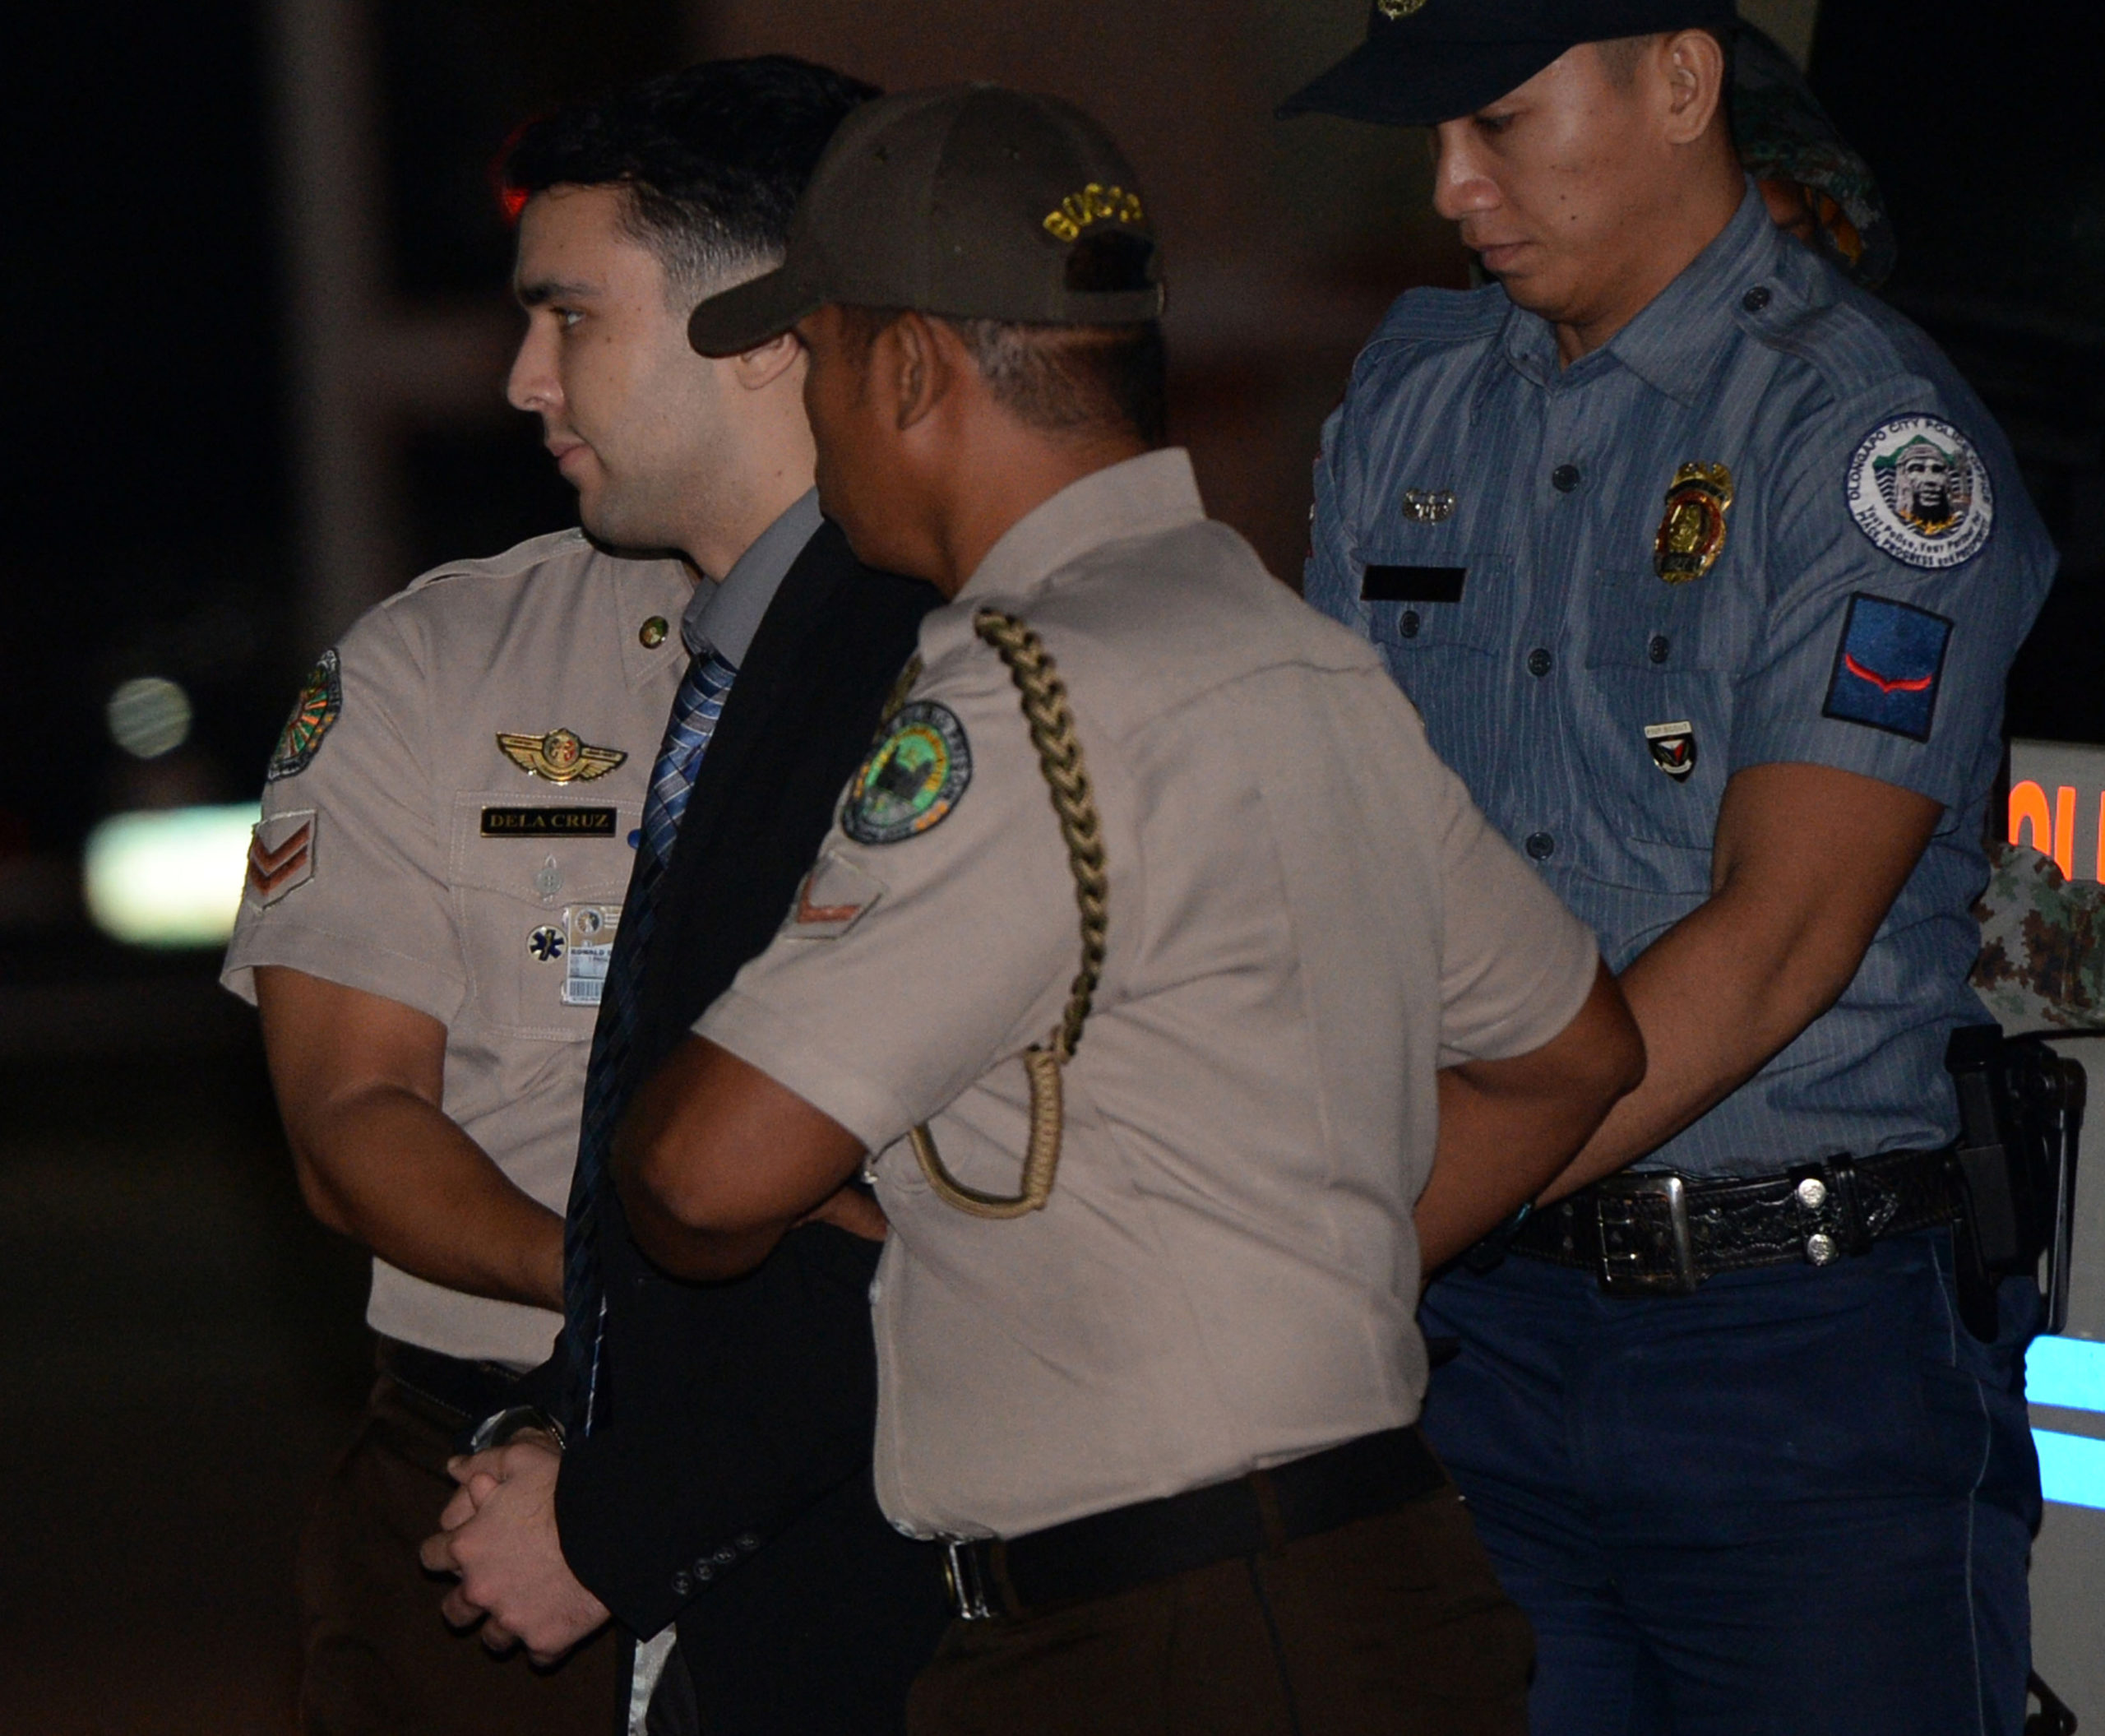 US Marine Lance Corporal Joseph Scott Pemberton (C) is escorted by a policeman and bureau of corrections official shortly after arriving at Camp Aguinaldo in Quezon City on December 1, 2015, from Olongapor city where a court convicted of him of homicide for the killing of Jennifer Laude in a motel in October 2014. A Philippine court has convicted a US Marine of killing a Filipina transgender woman in a red light district, in a case that reignited long-simmering anti-US sentiment in the country. AFP PHOTO / TED ALJIBE / POOL / AFP / POOL / TED ALJIBE (Photo credit should read TED ALJIBE/AFP via Getty Images)